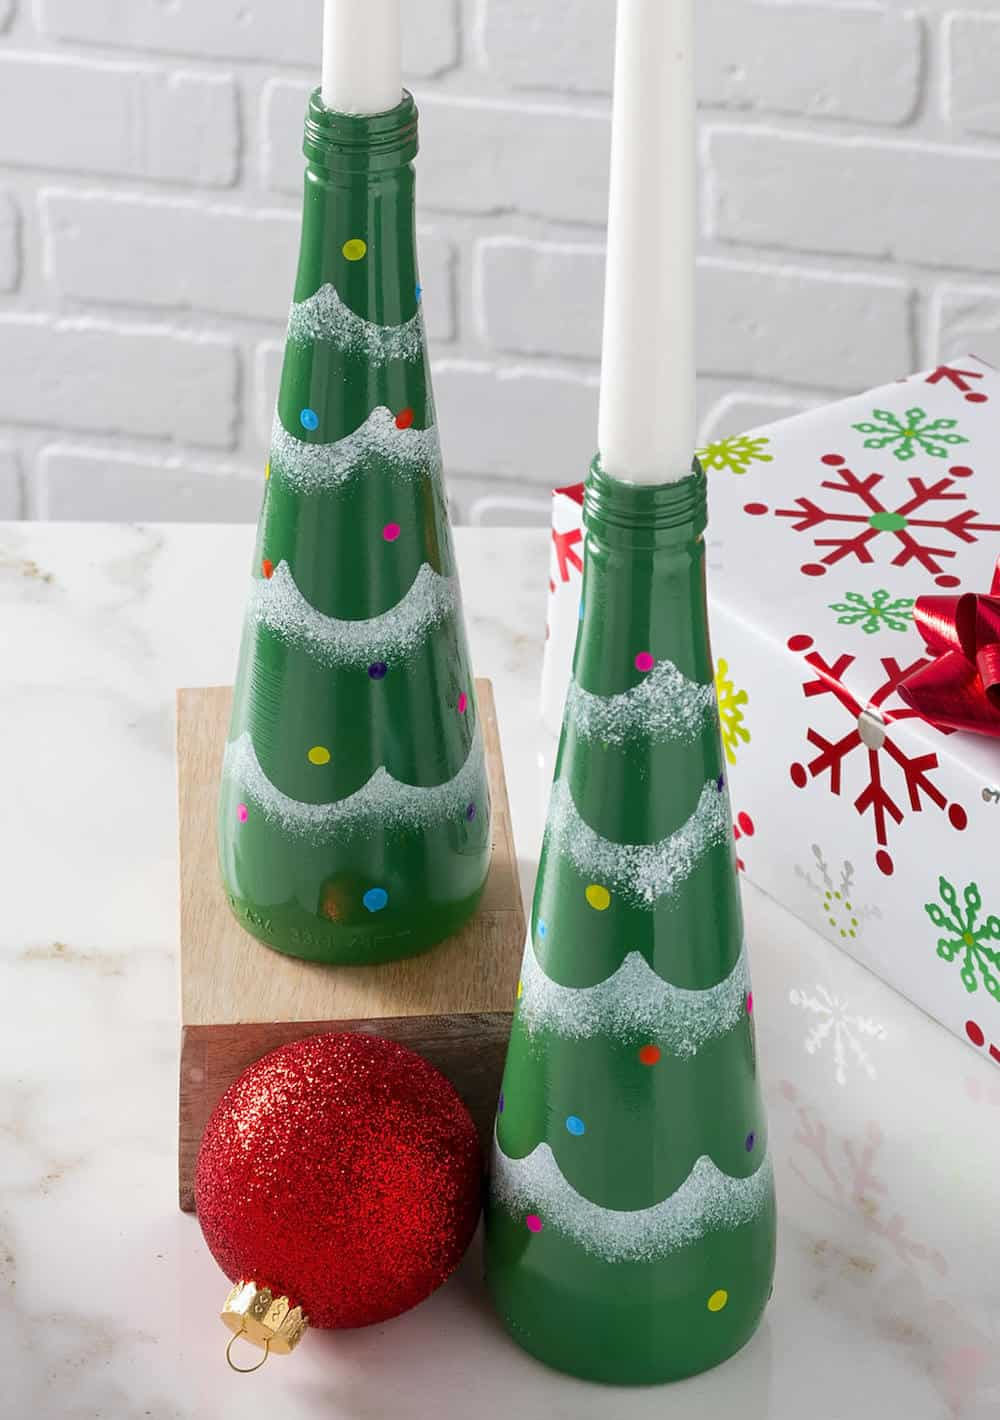 Recycle glass soda bottles into these fun and modern Christmas candle holders made to look like trees! SO easy to make and customize.